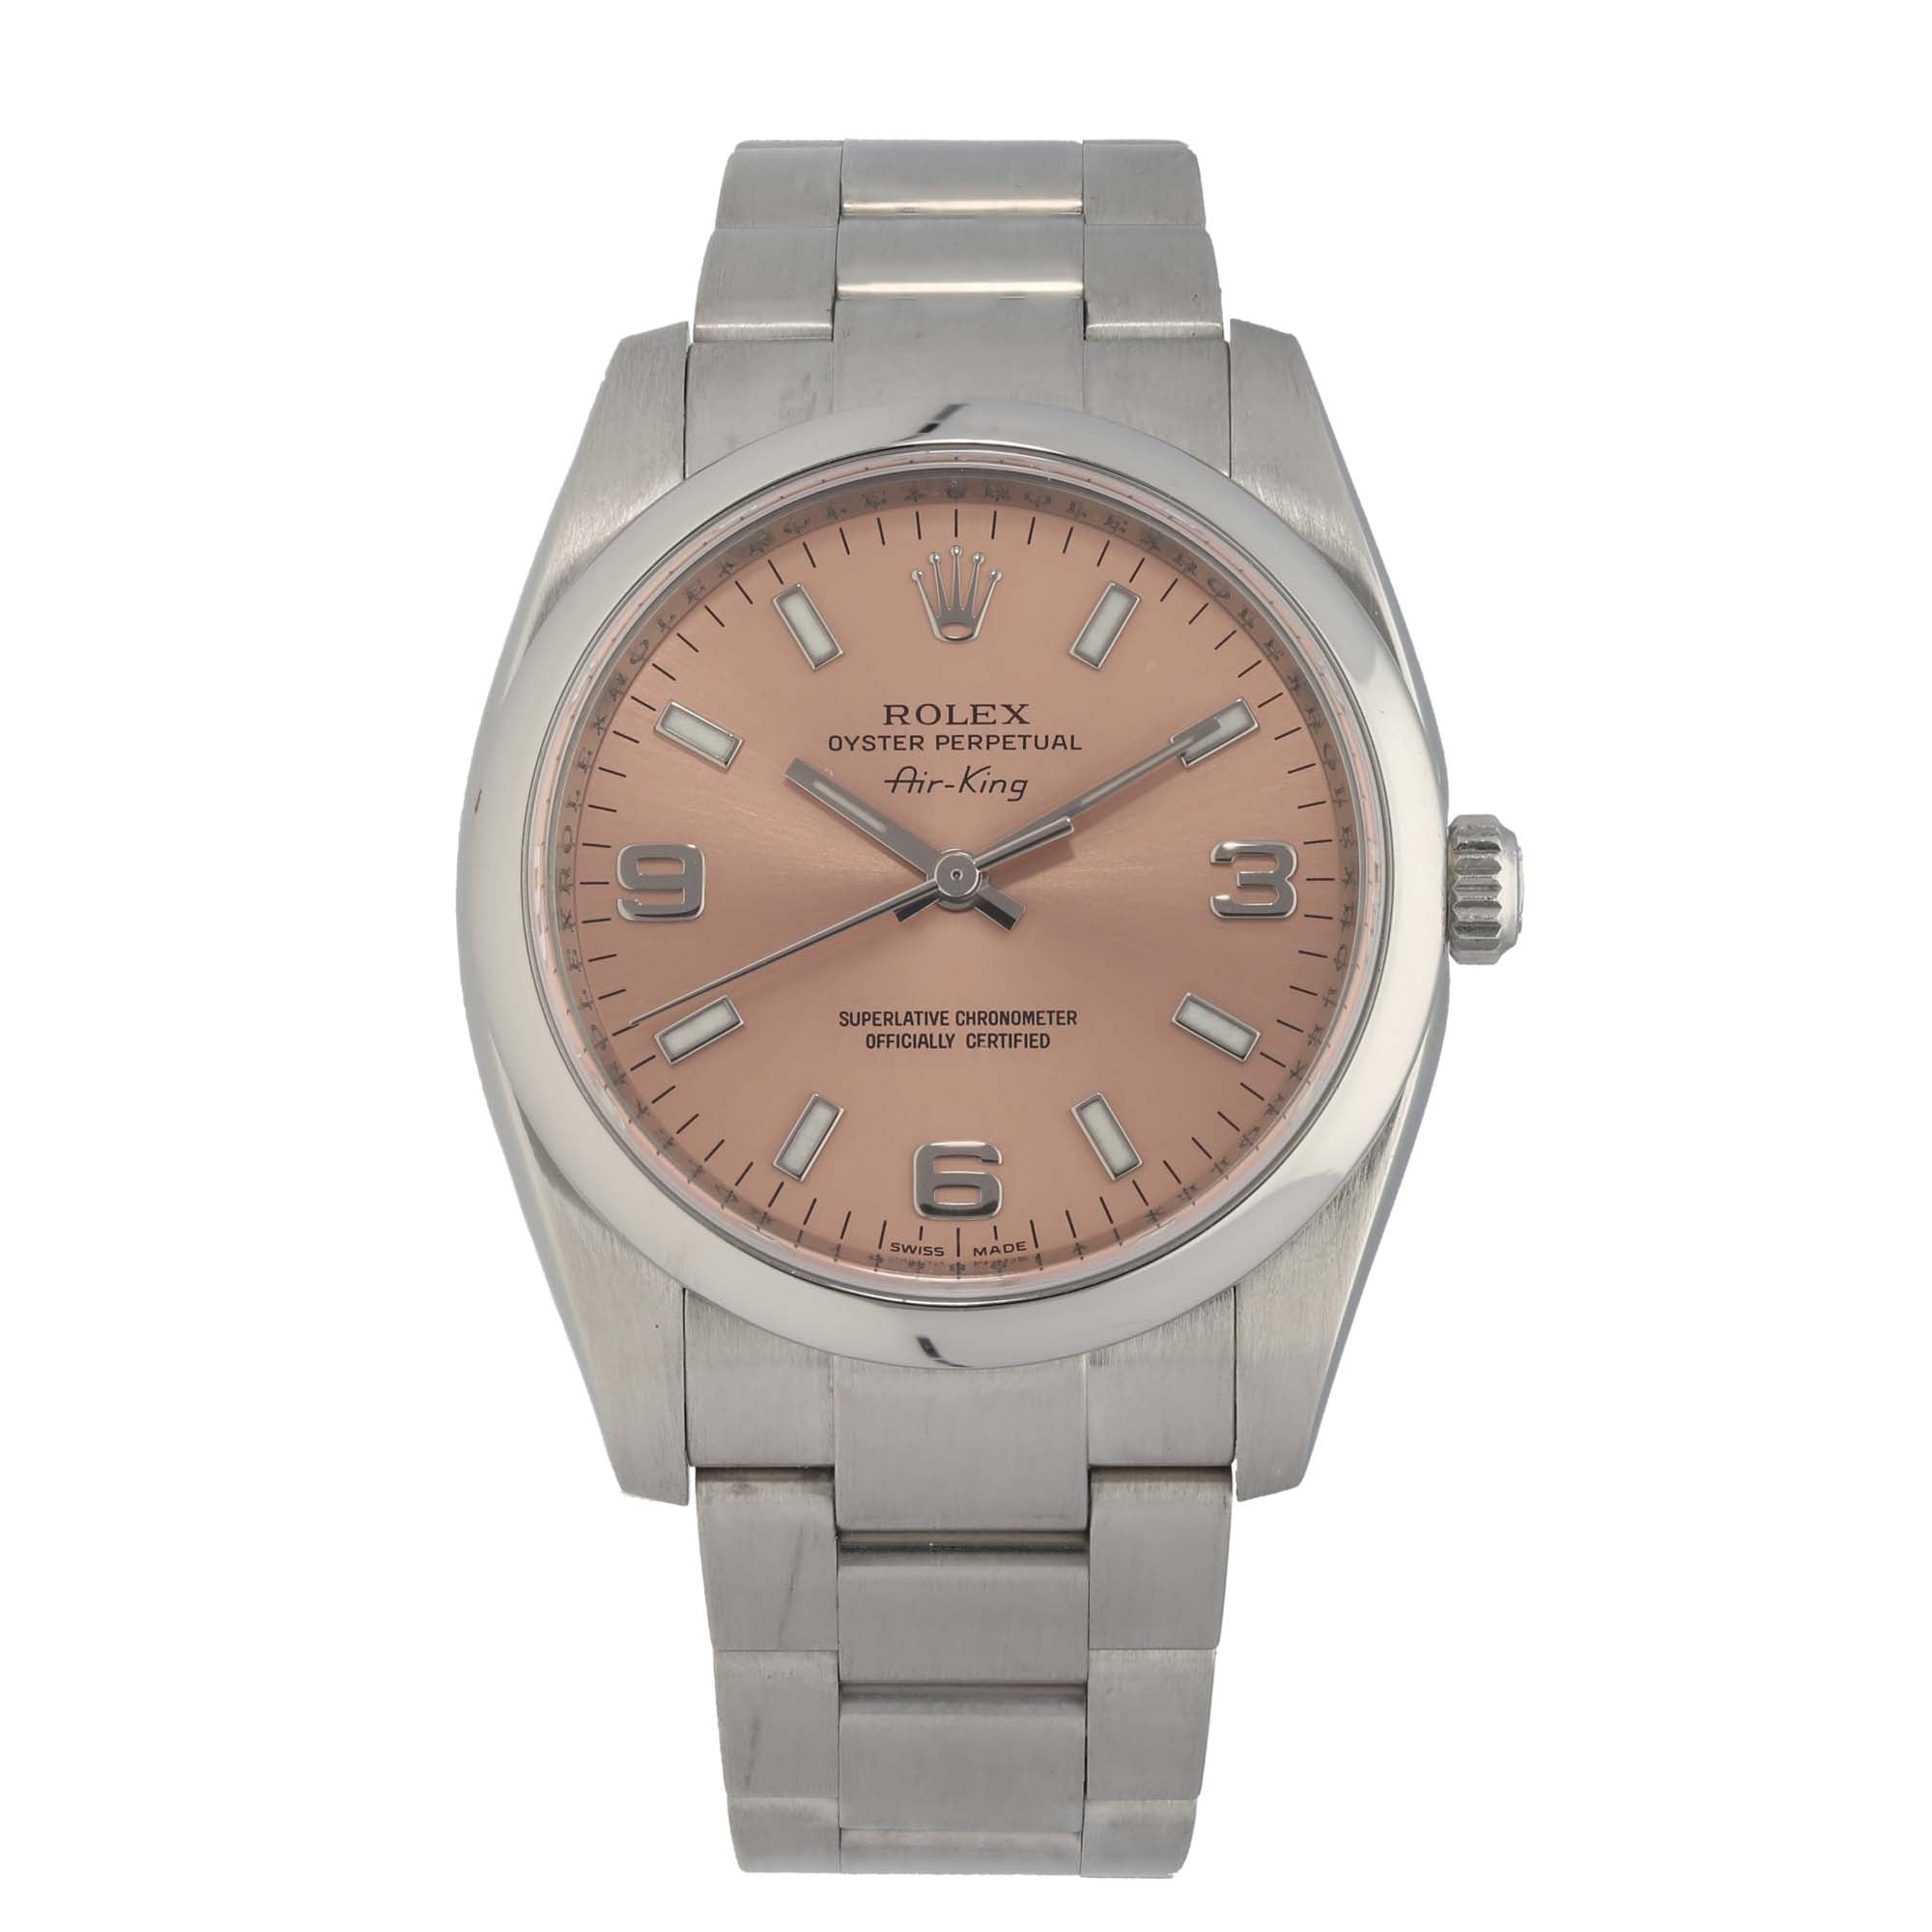 Rolex Oyster Perpetual 114200 35mm Stainless Steel Ladies Watch